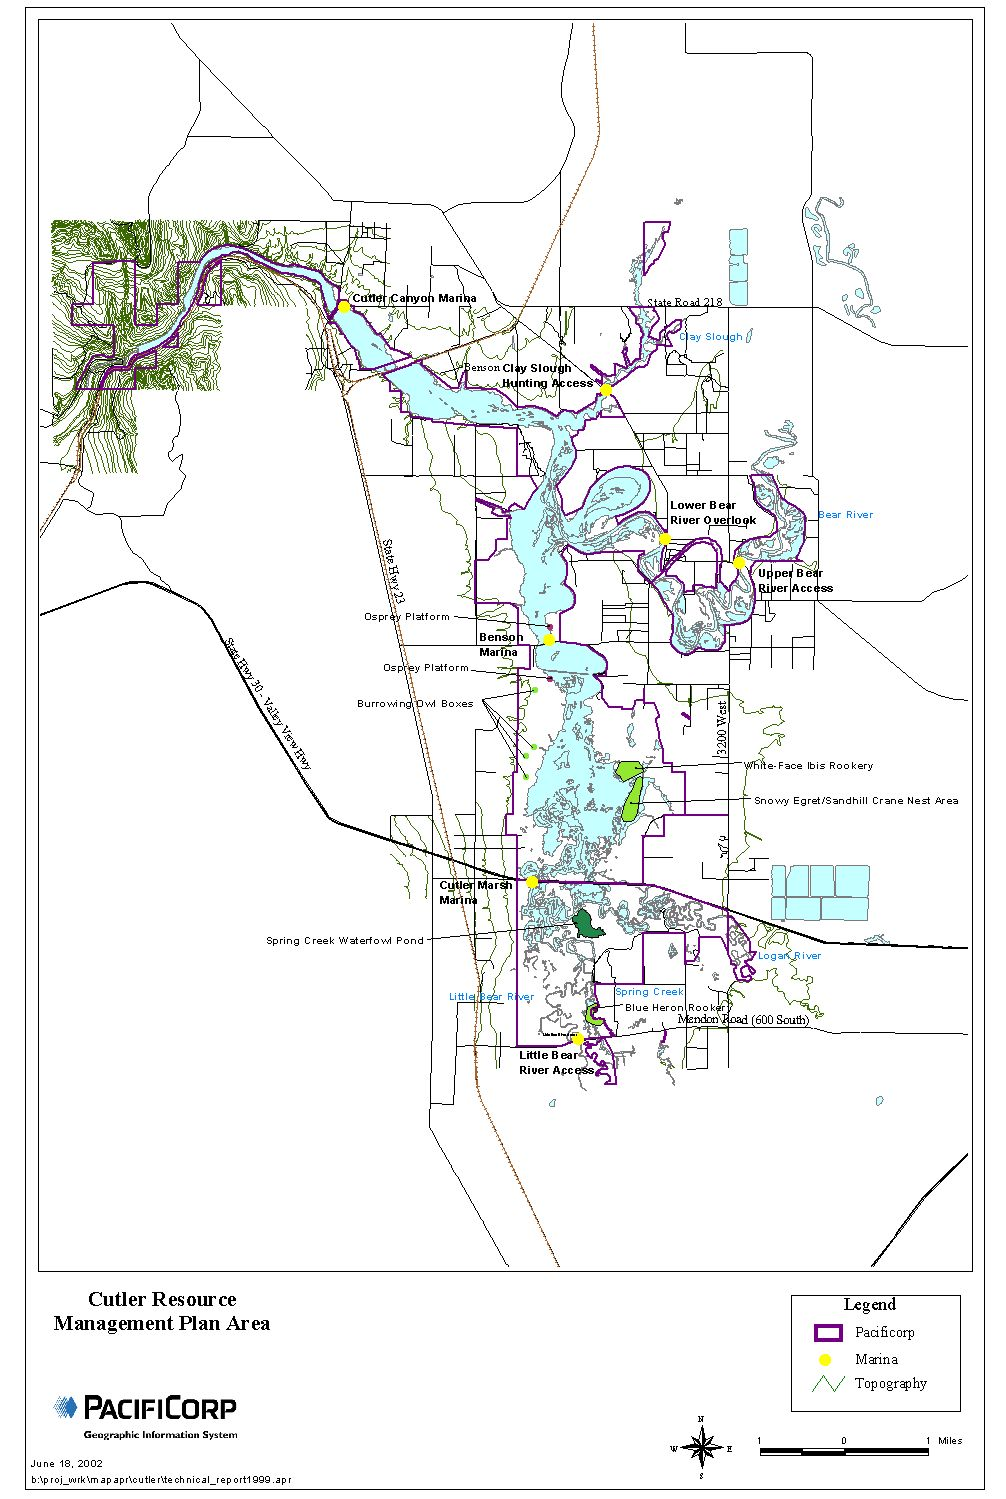 Cutler Reservoir Management Plan Area PacifiCorp GIS, June 18, 2002